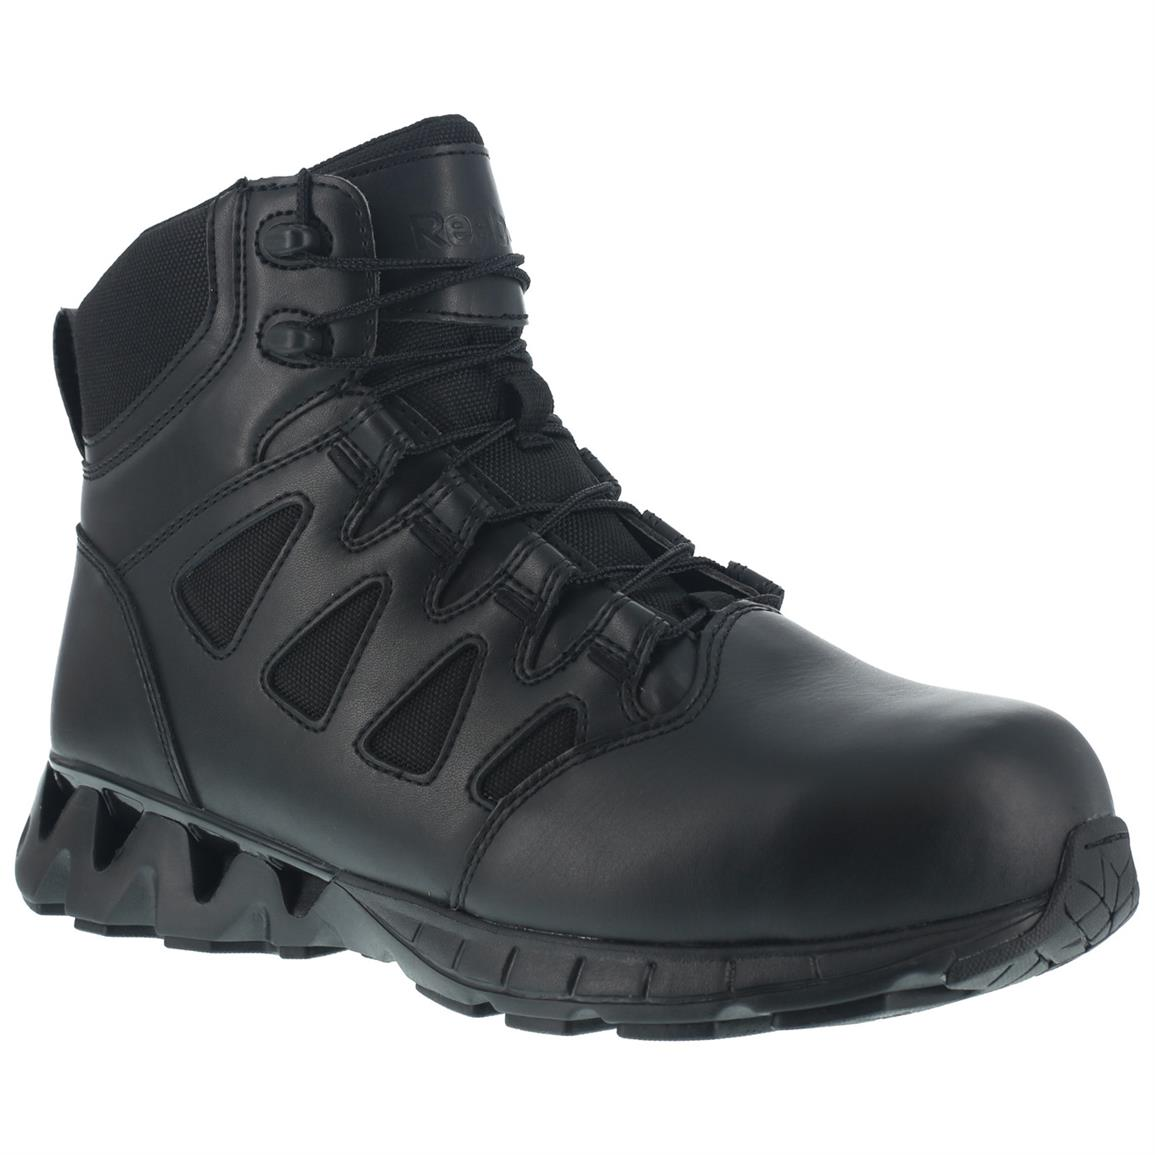 Reebok Men's Duty ZigKick Tactical SZ Composite Toe Boots, Side Zip, Waterproof, Black